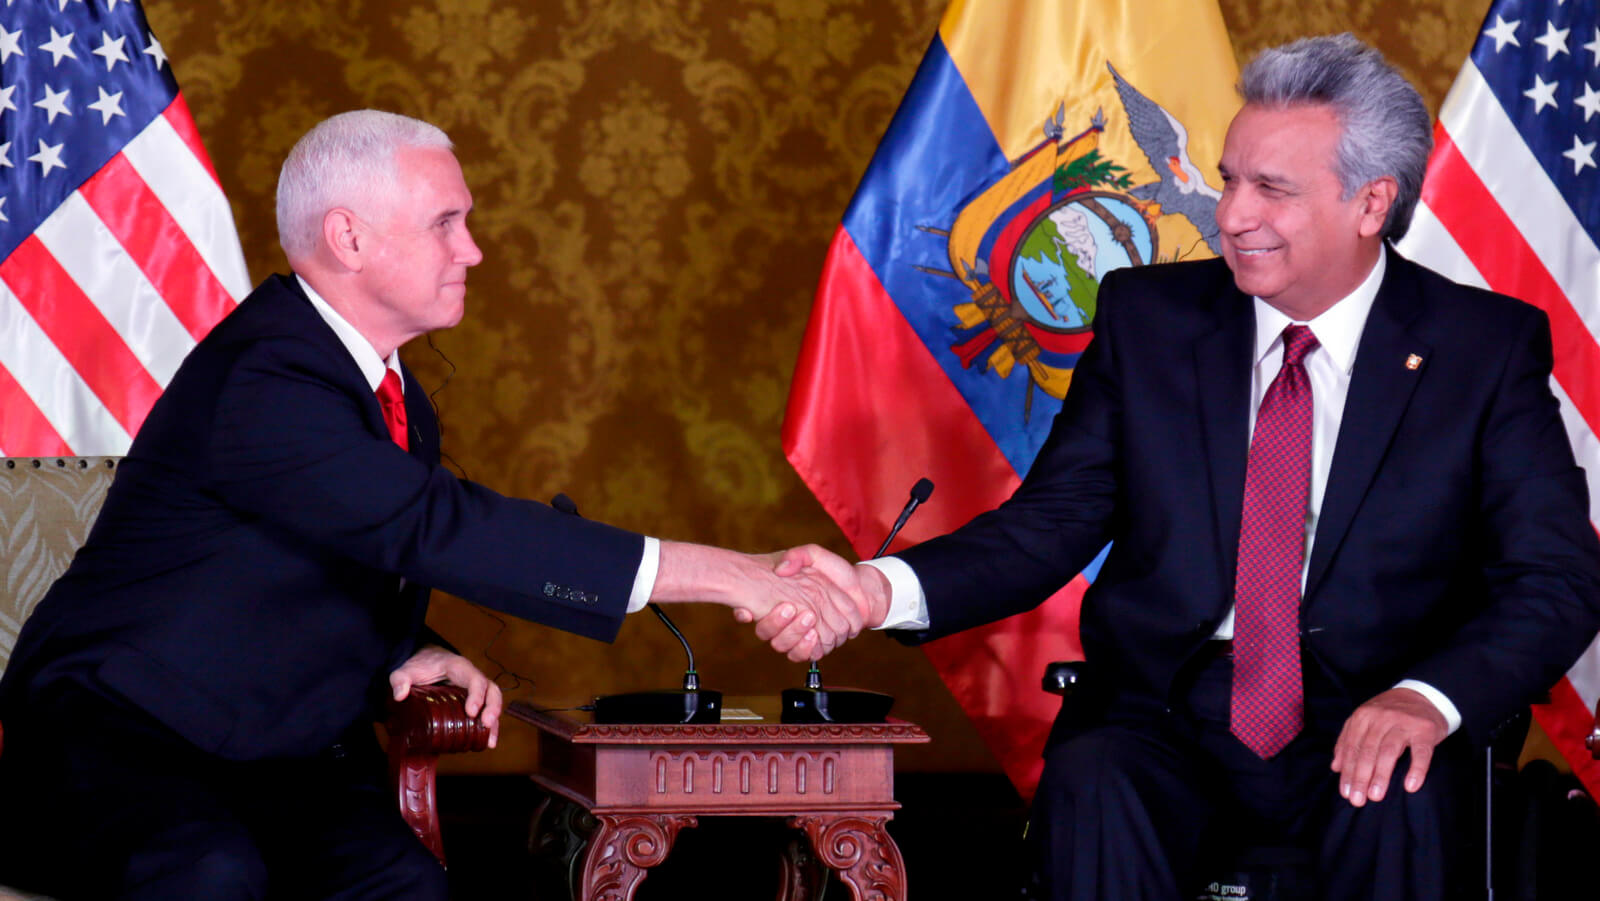 Ecuador's President Lenin Moreno, right, shakes hand with U.S. Vice President Mike Pence at the government palace in Quito, Ecuador, June 28, 2018. Dolores Ochoa | AP